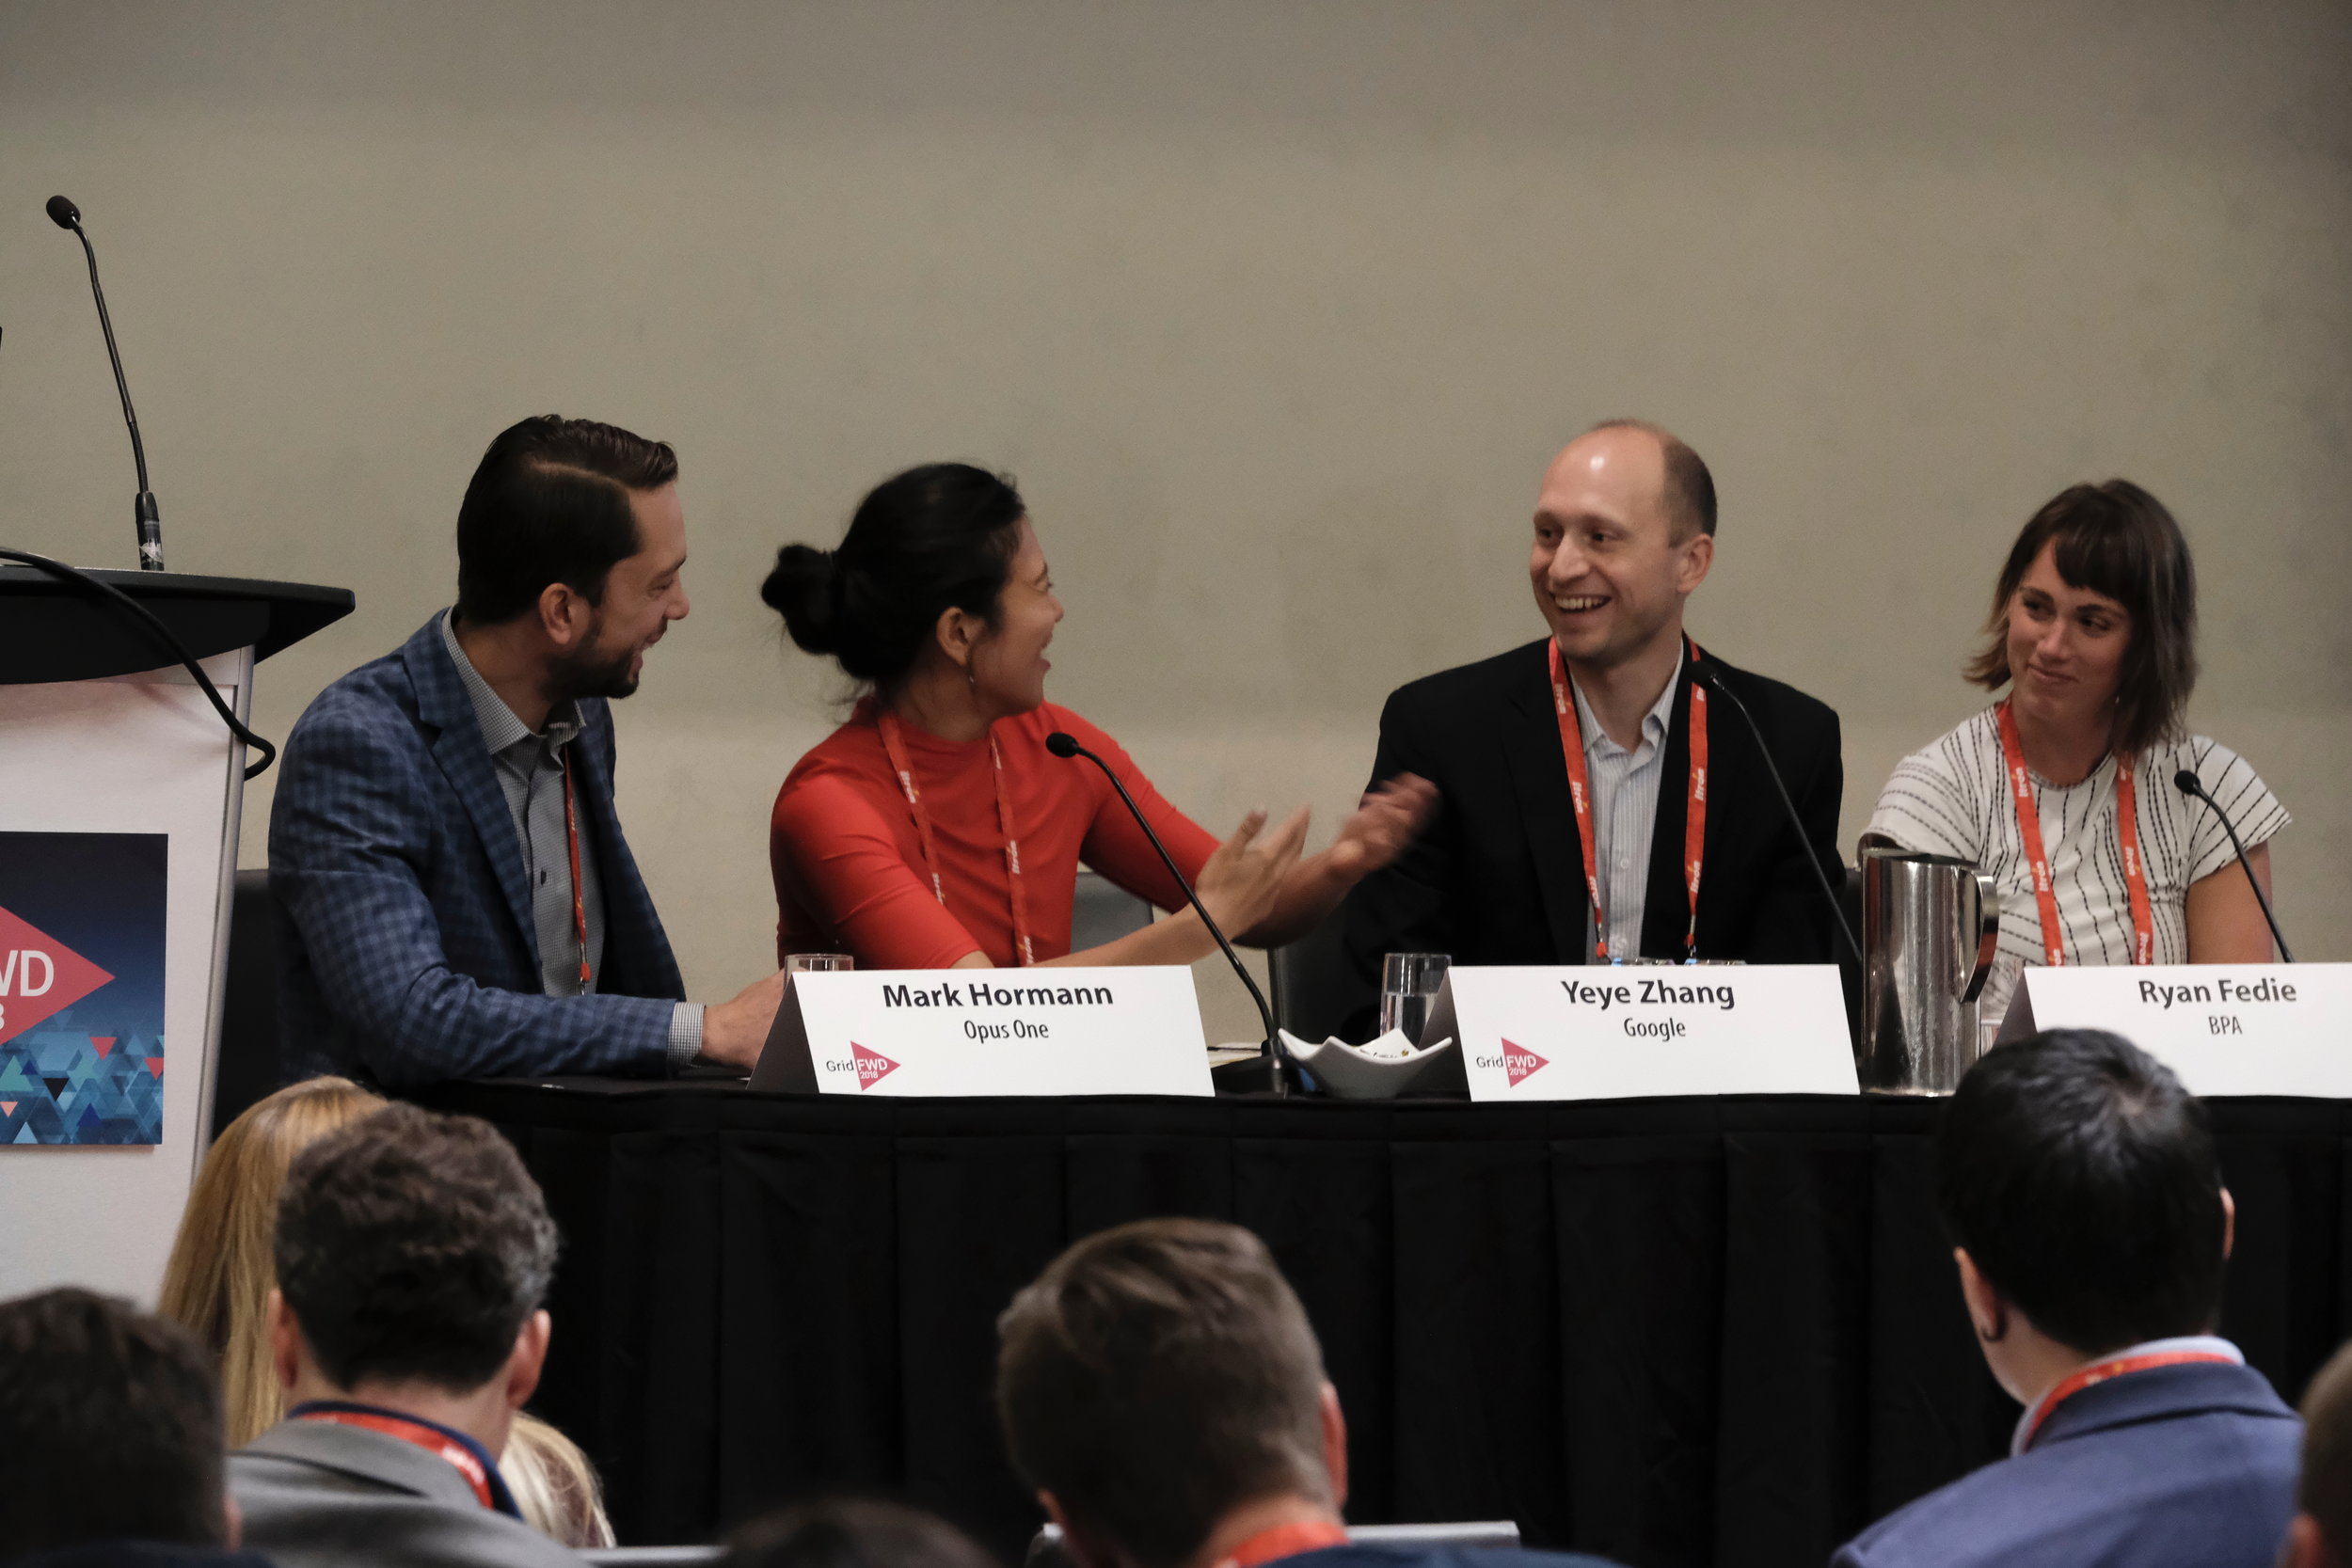 Panelists from the GridFWD 2018 event: Mark Hormann, Yeye Zhang, Ryan Fedie and Teague Douglas.